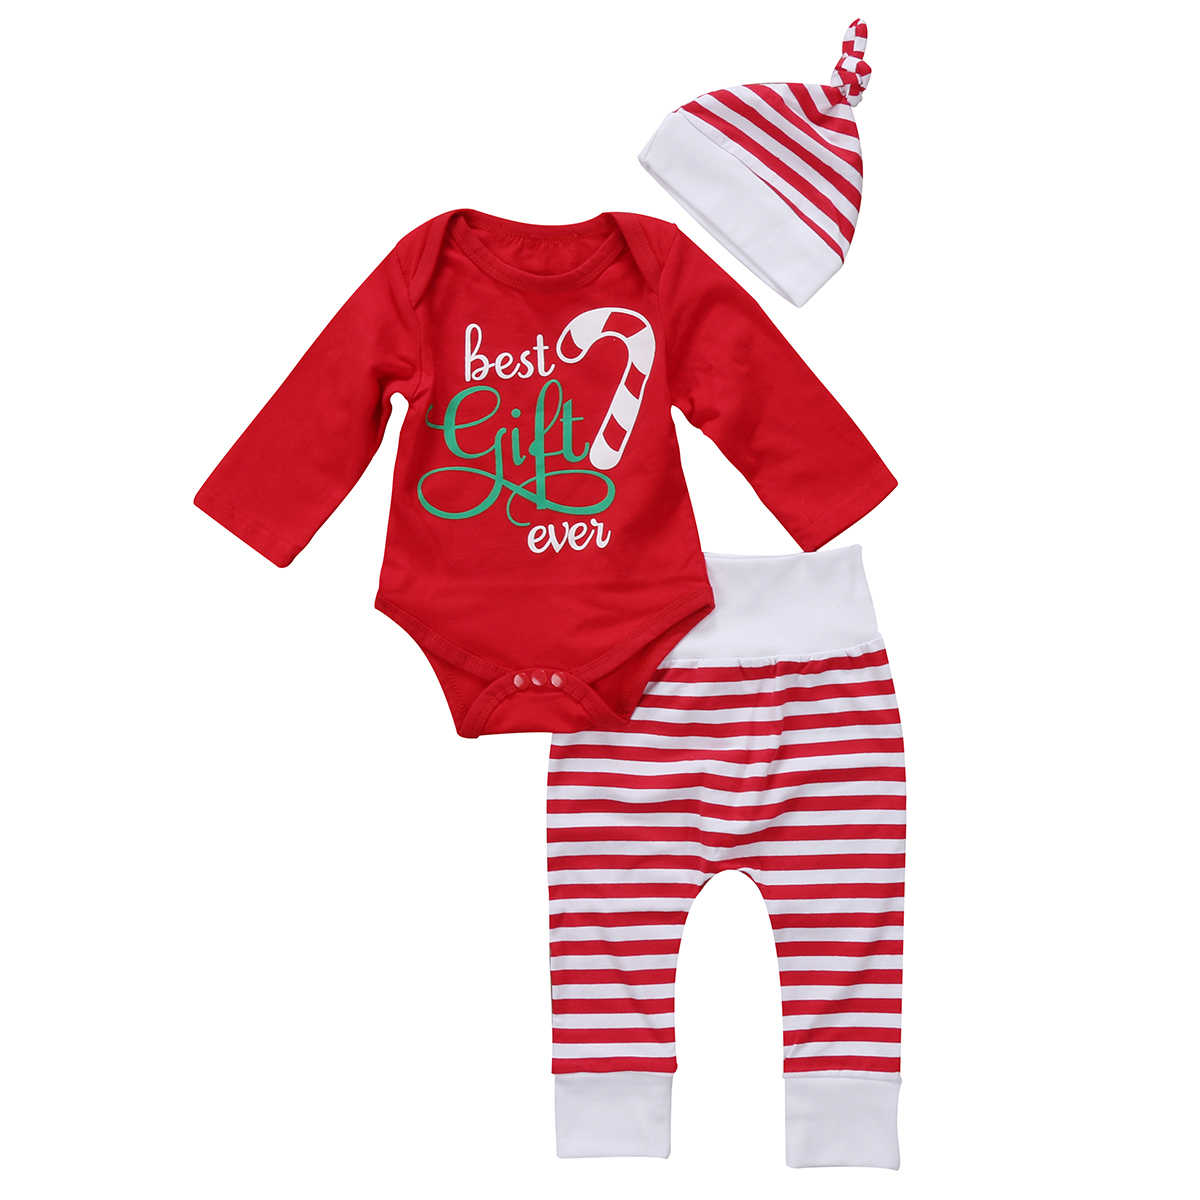 2017 baby girl clothes Newborn Baby Girls Boys Christmas Romper Tops Long Striped Pants Hat Clothes Xmas Outfit Clothes 0-24M